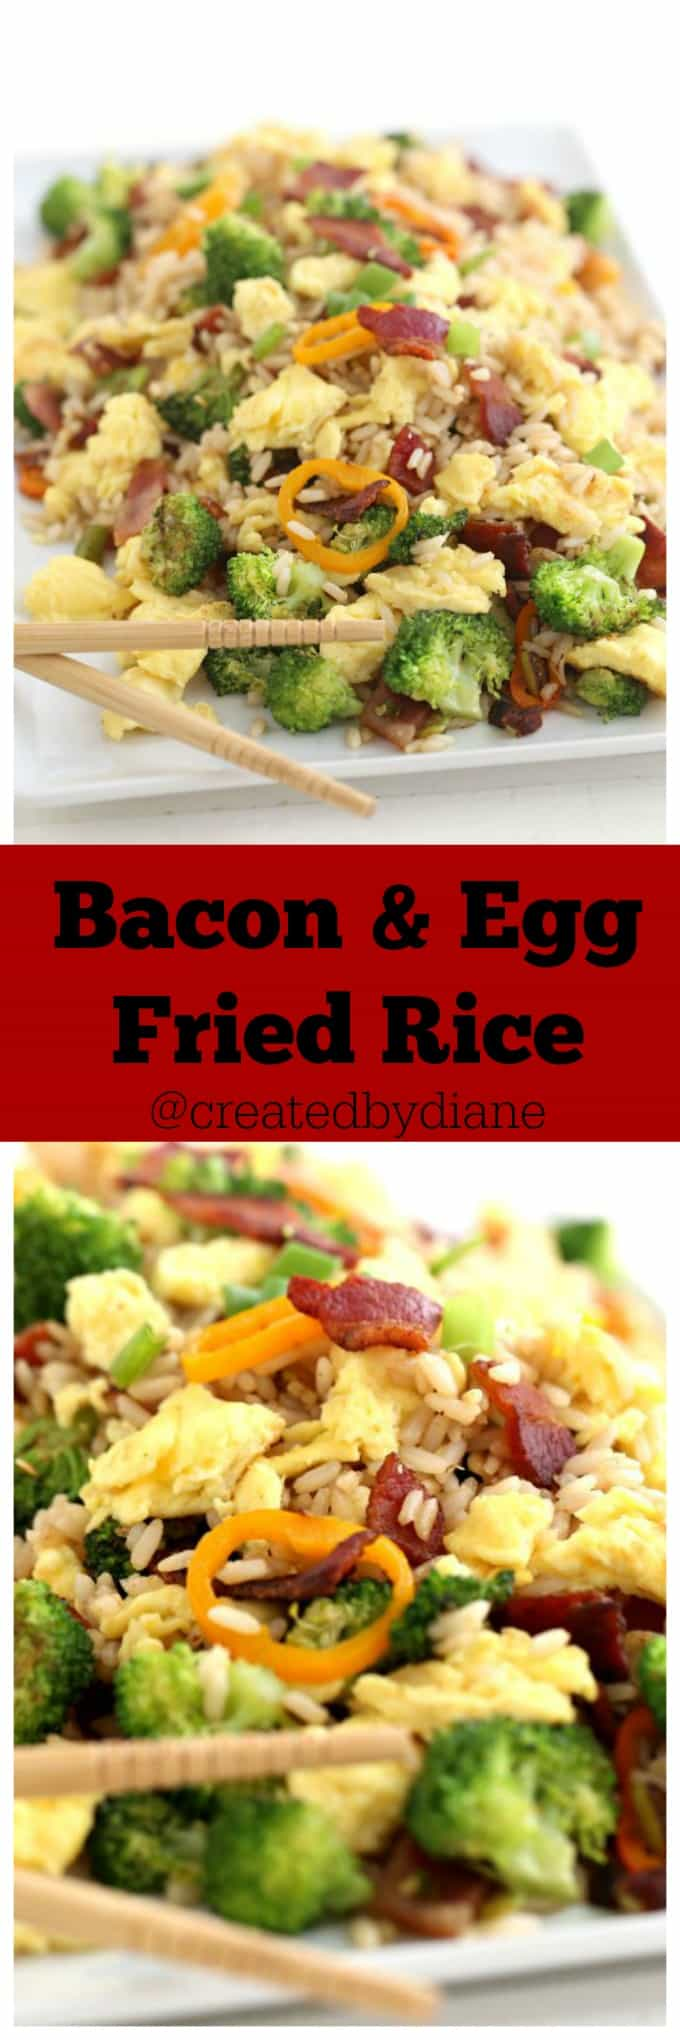 Bacon and Egg Fried Rice @createdbydiane PERFECT for breakfast or dinner, or lunch or anytime in between!